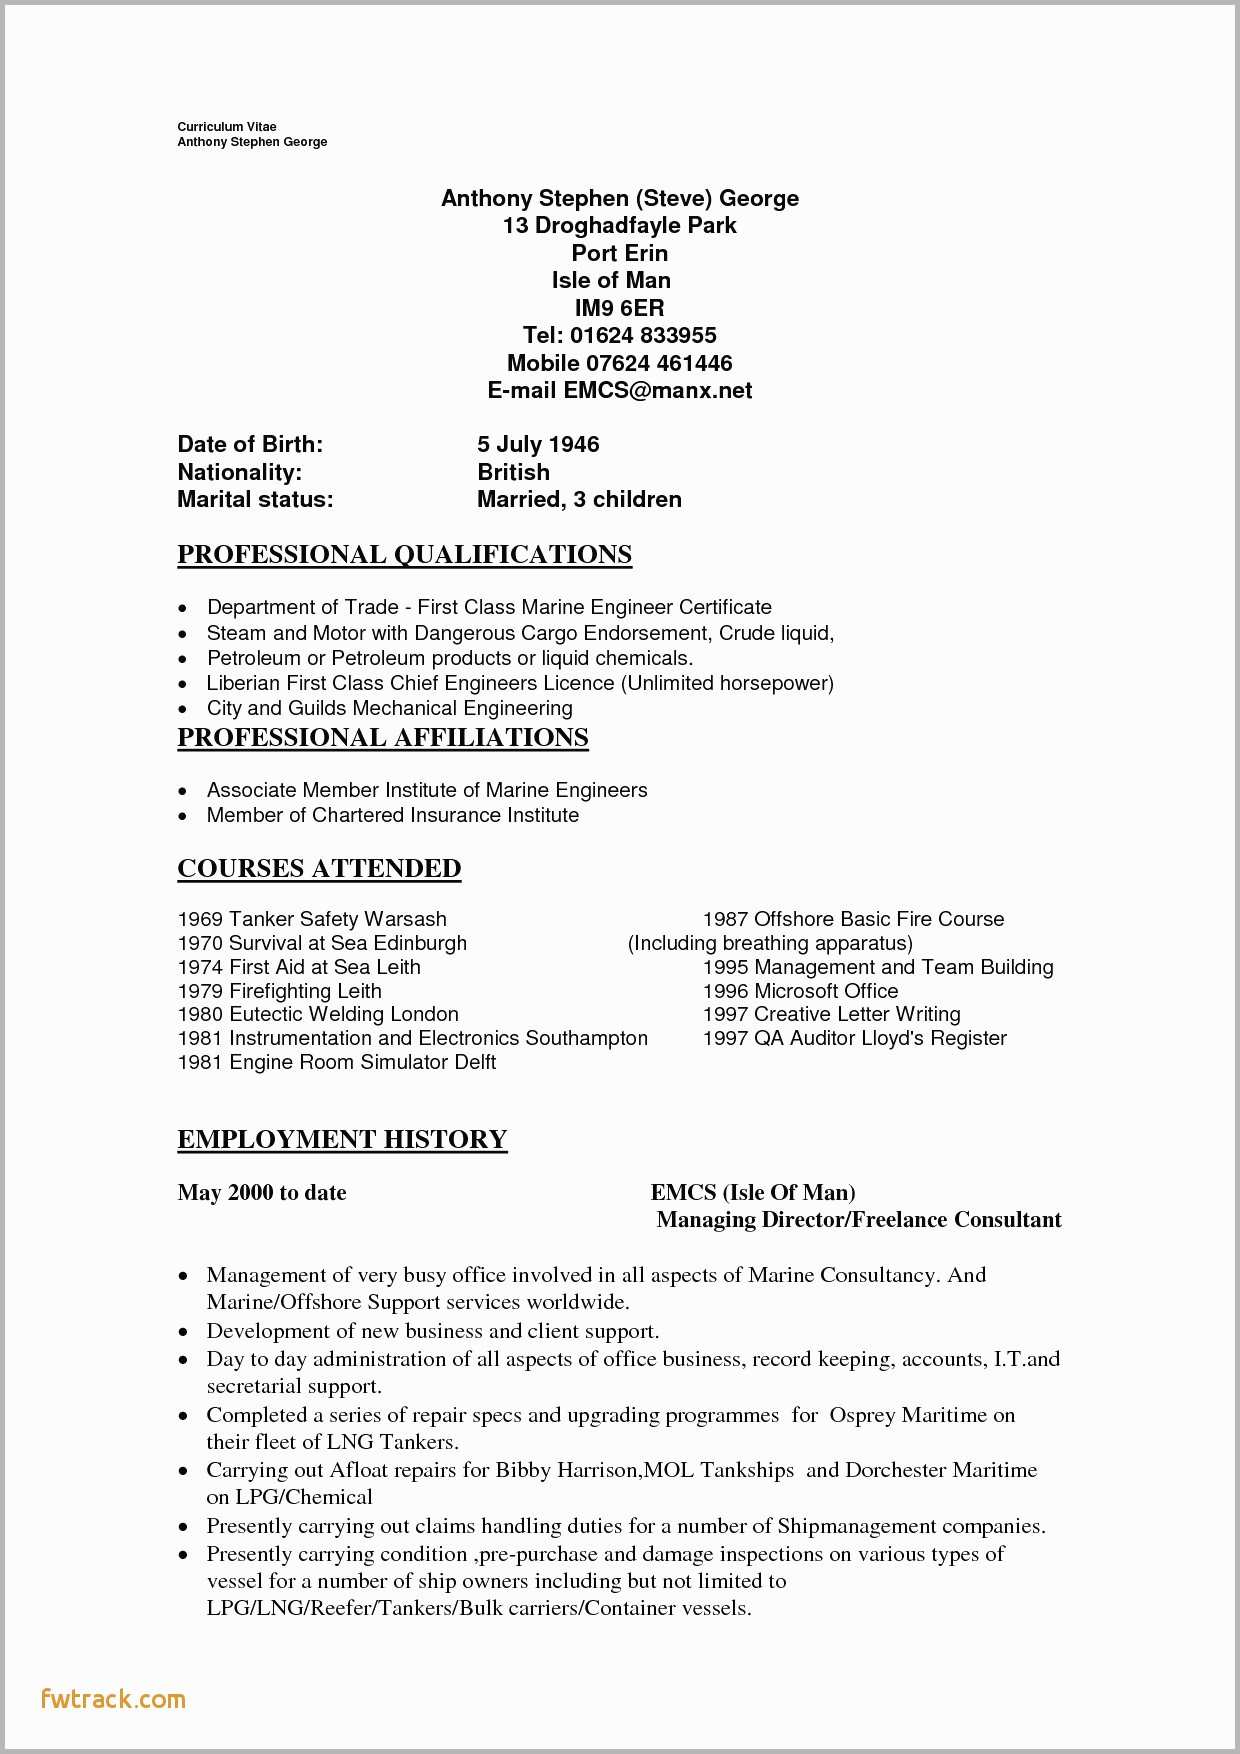 mechanical engineering resume template example-Mechanical Engineer Resume Template 3-c